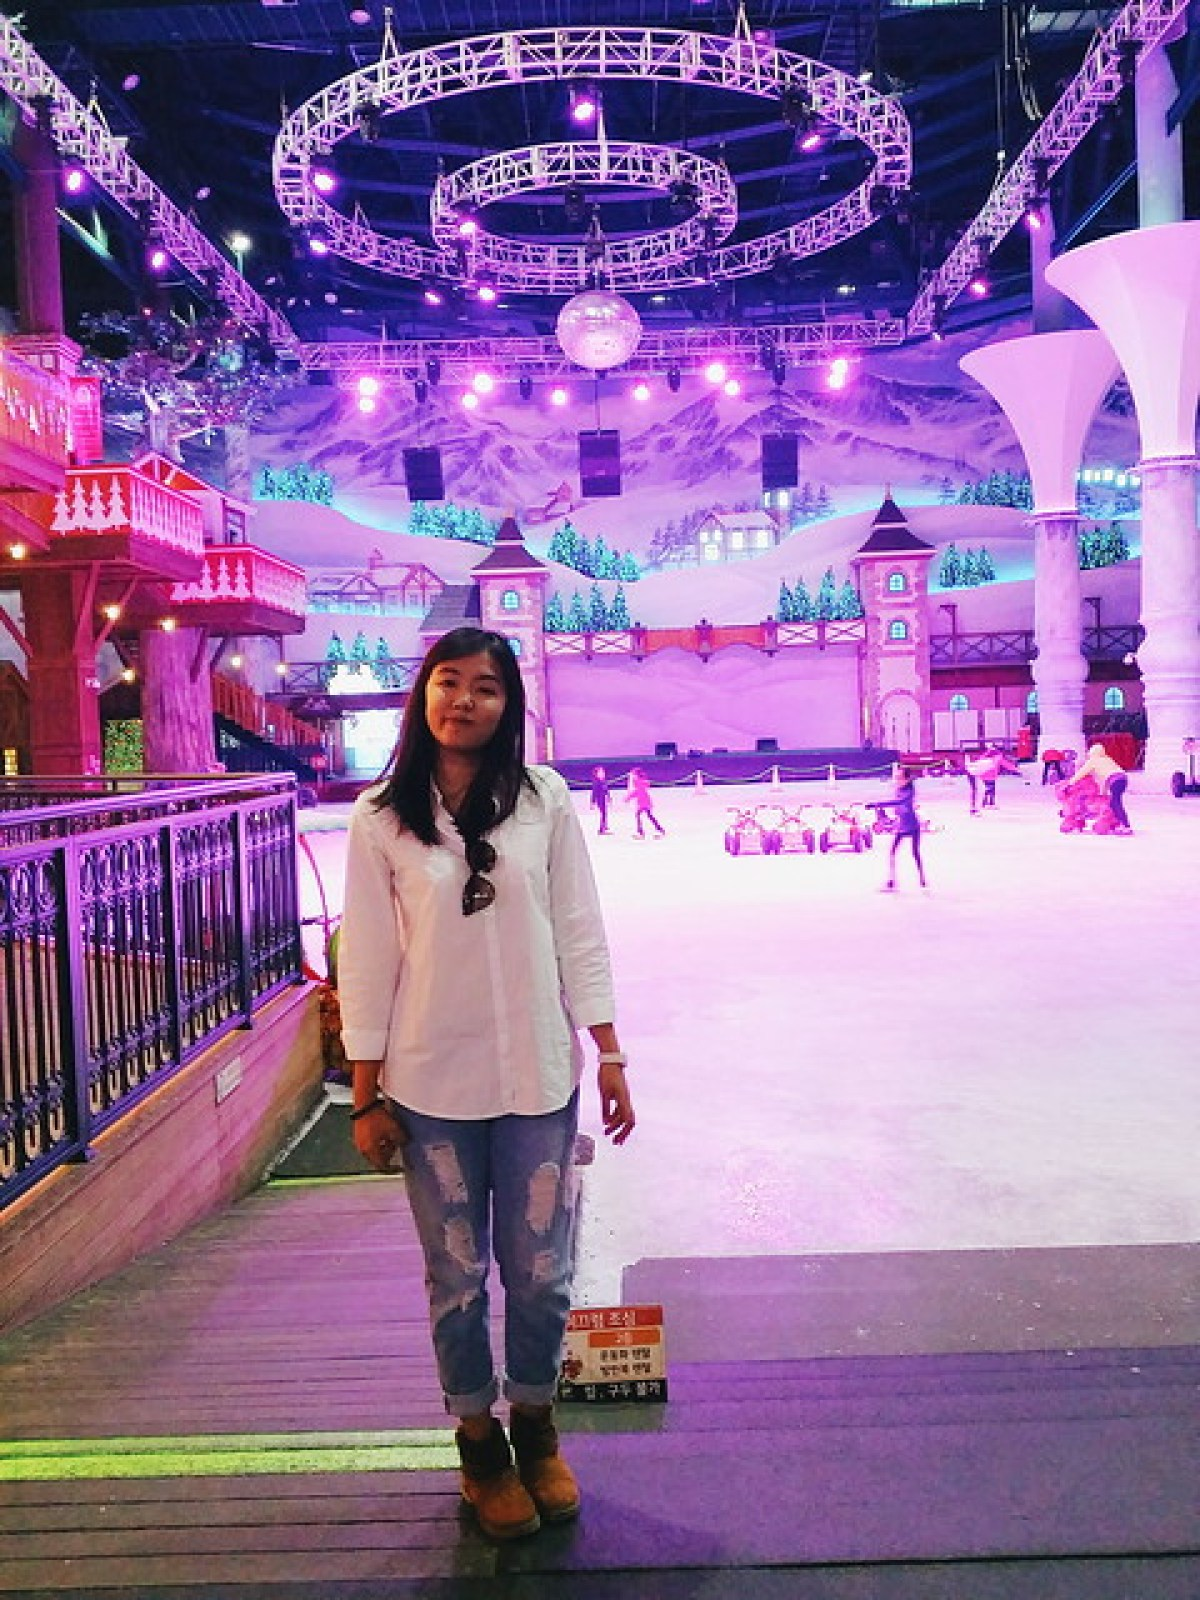 A girl standing with One Mount skating rink on her background